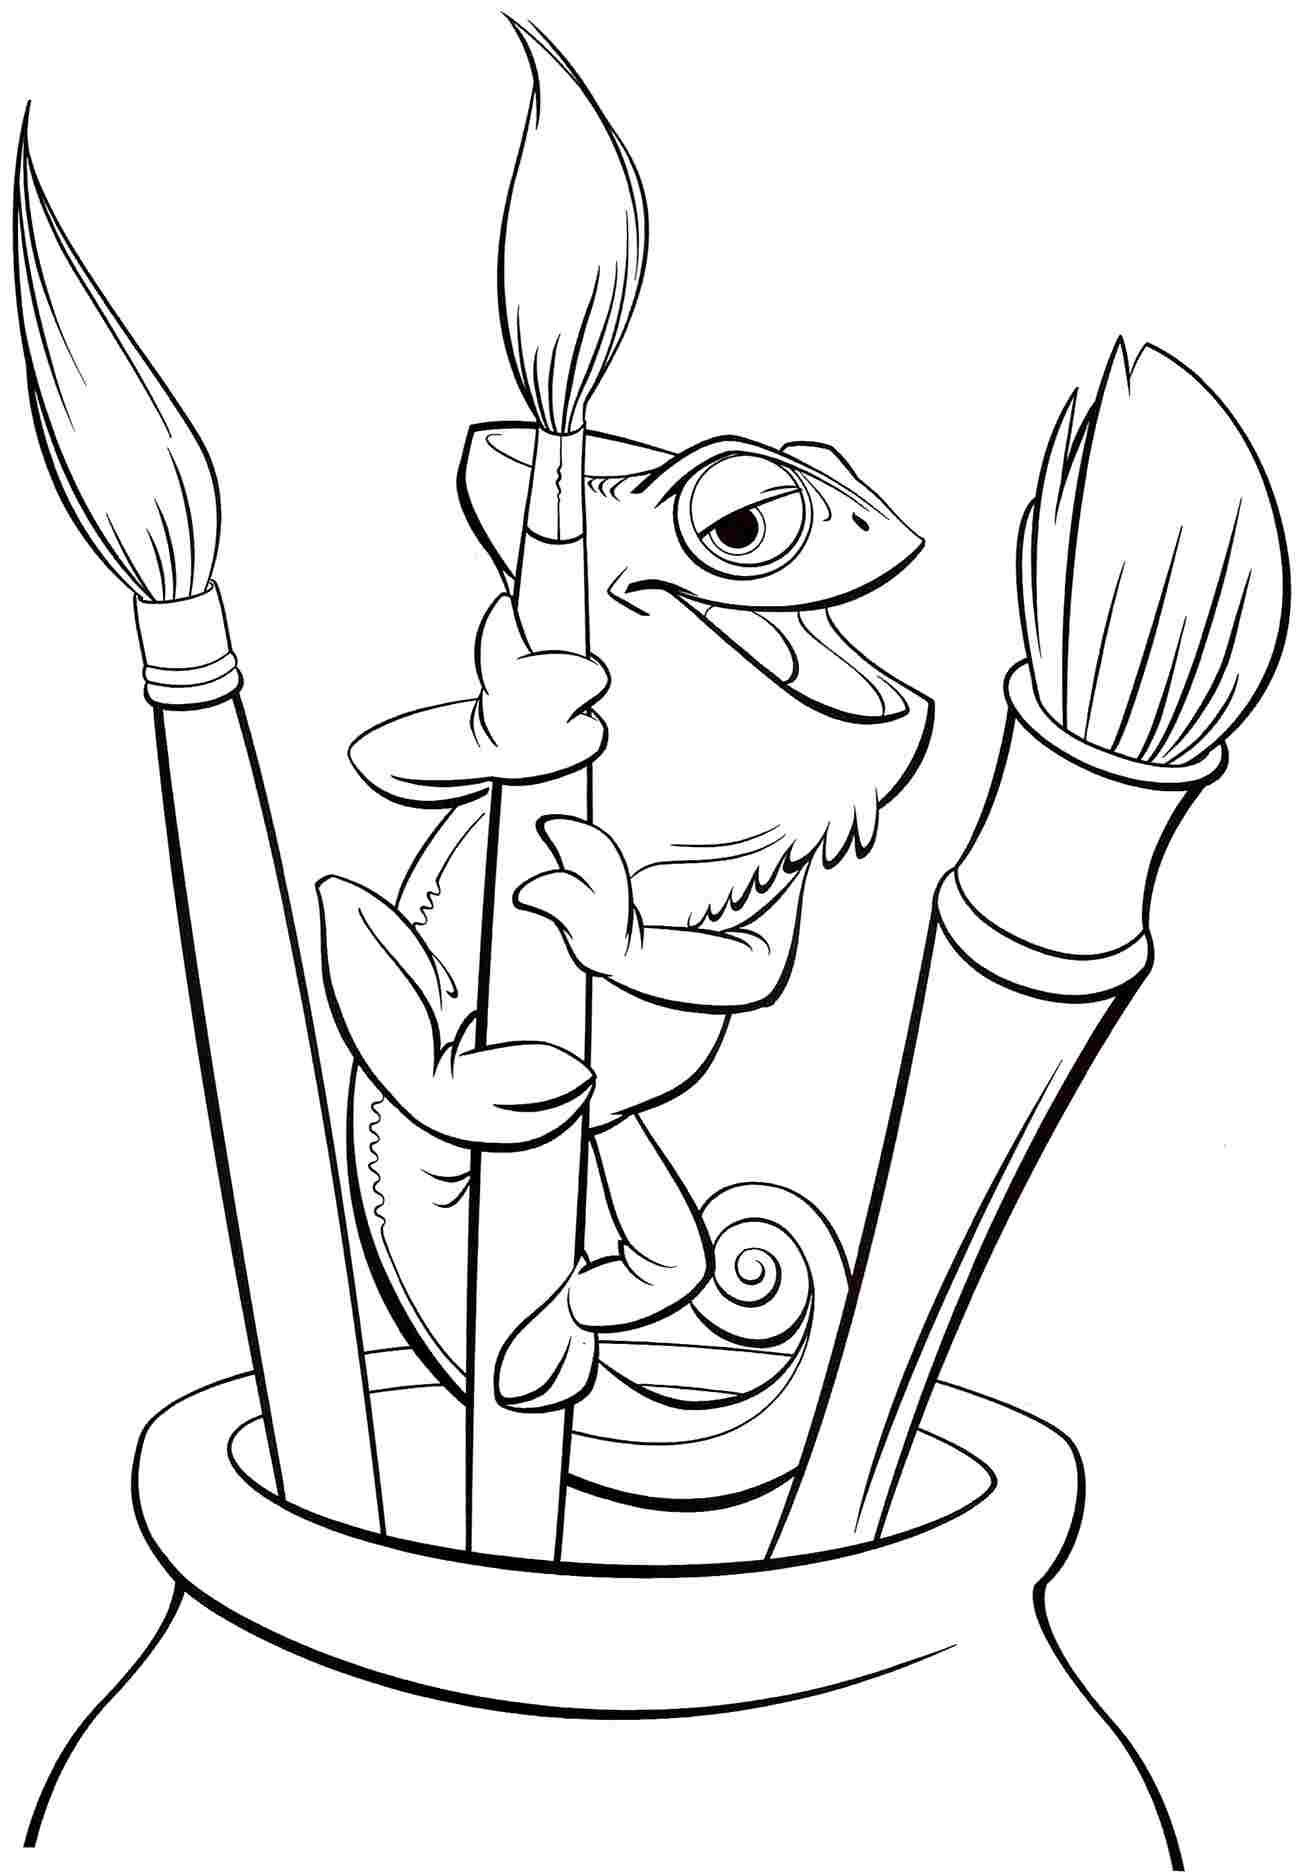 disney rapunzel pictures to color cute disney princess coloring pages at getdrawings free color to pictures rapunzel disney